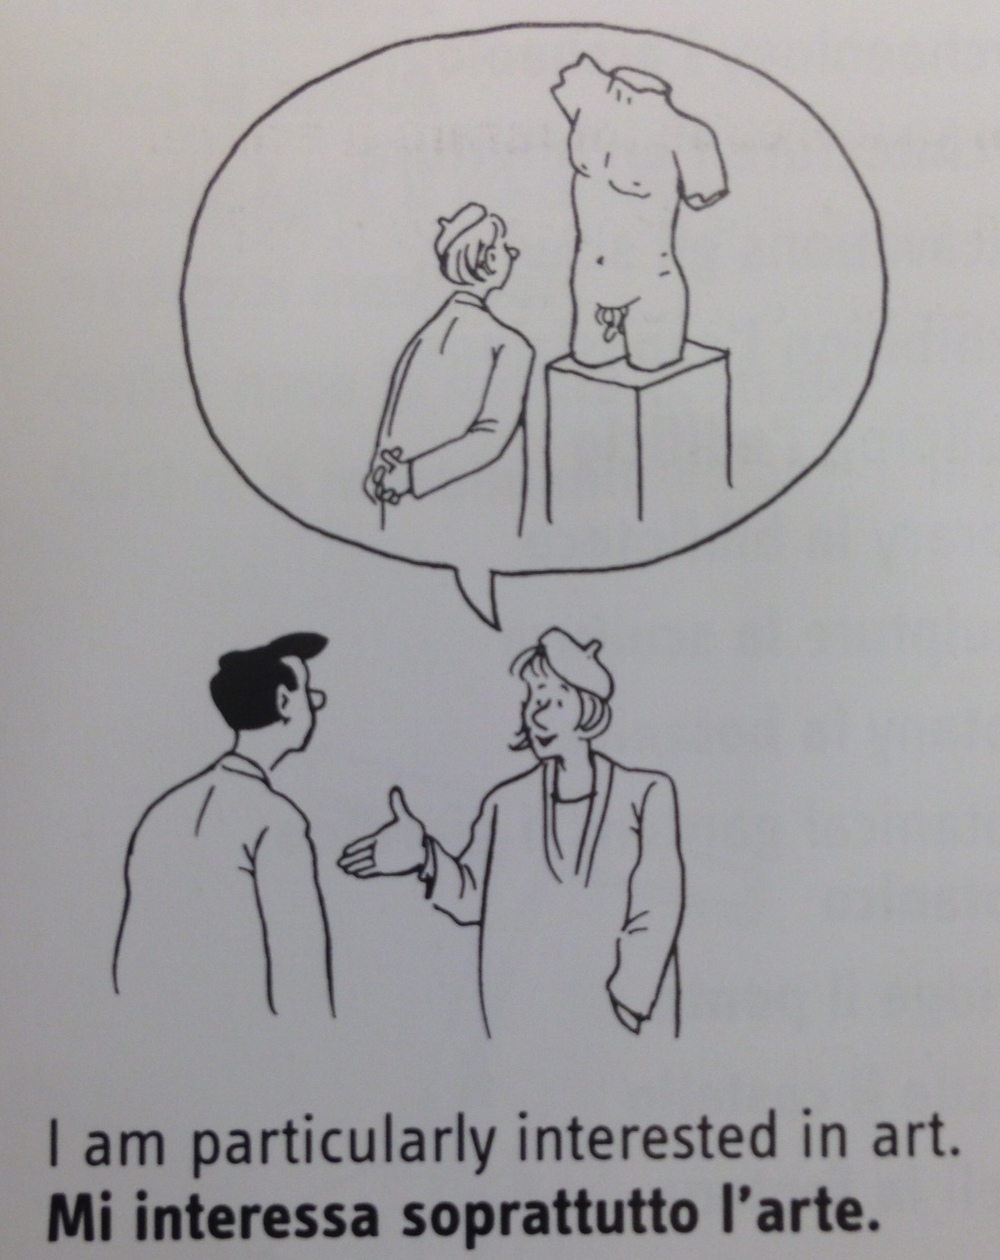 A cartoon from an Italian language book I found at Barnes and Noble.